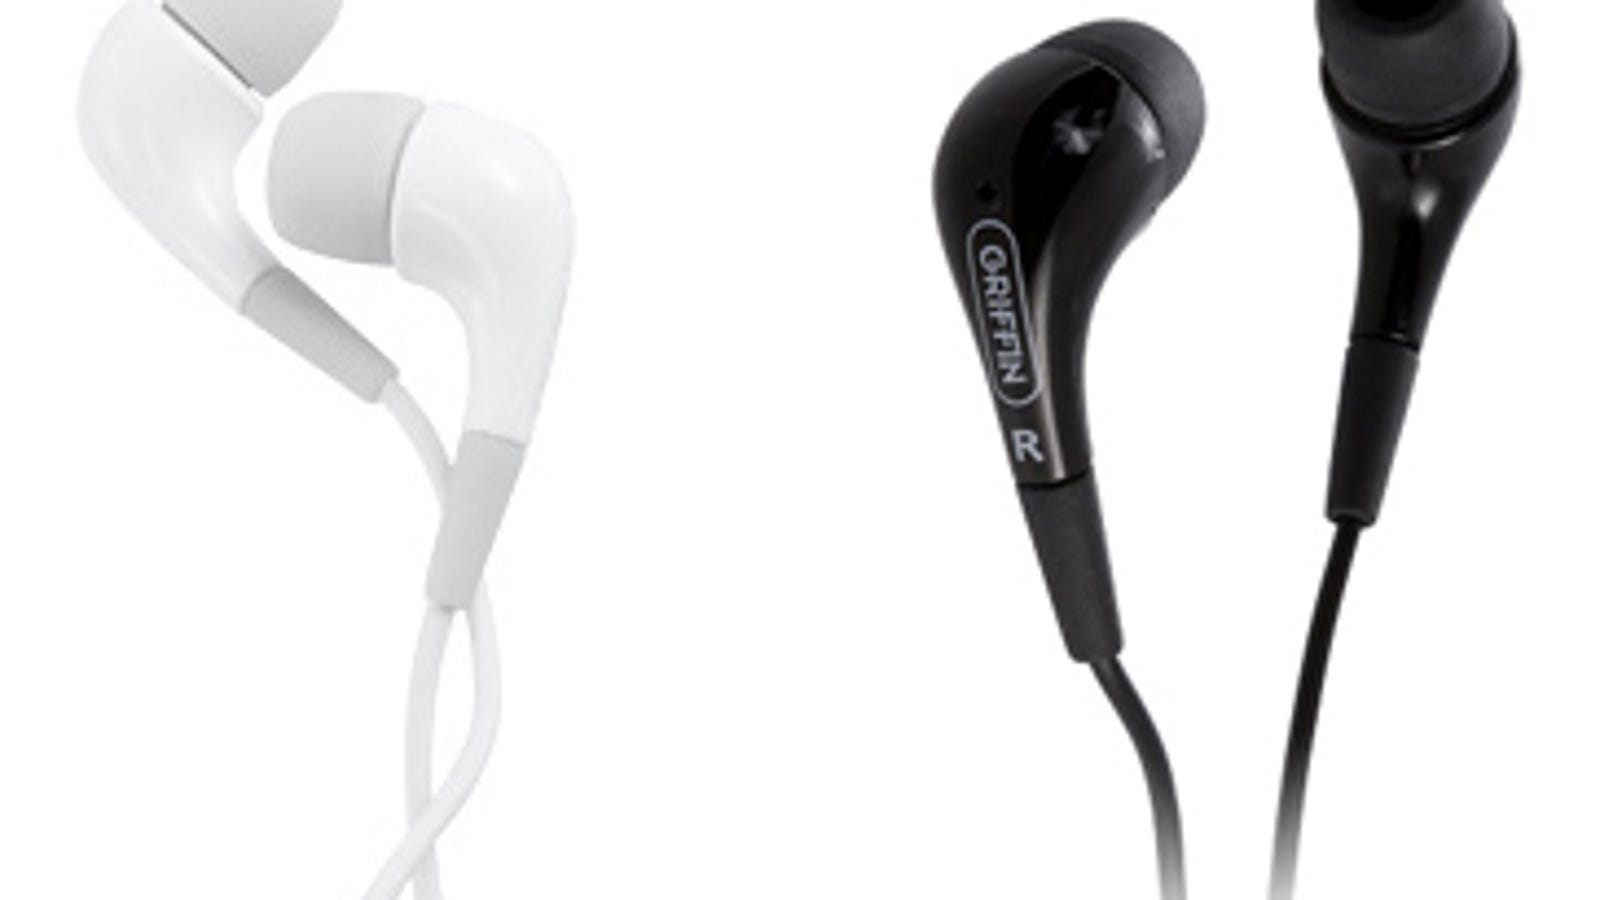 Bose quietcomfort earbuds replacements - gaming earbuds bose